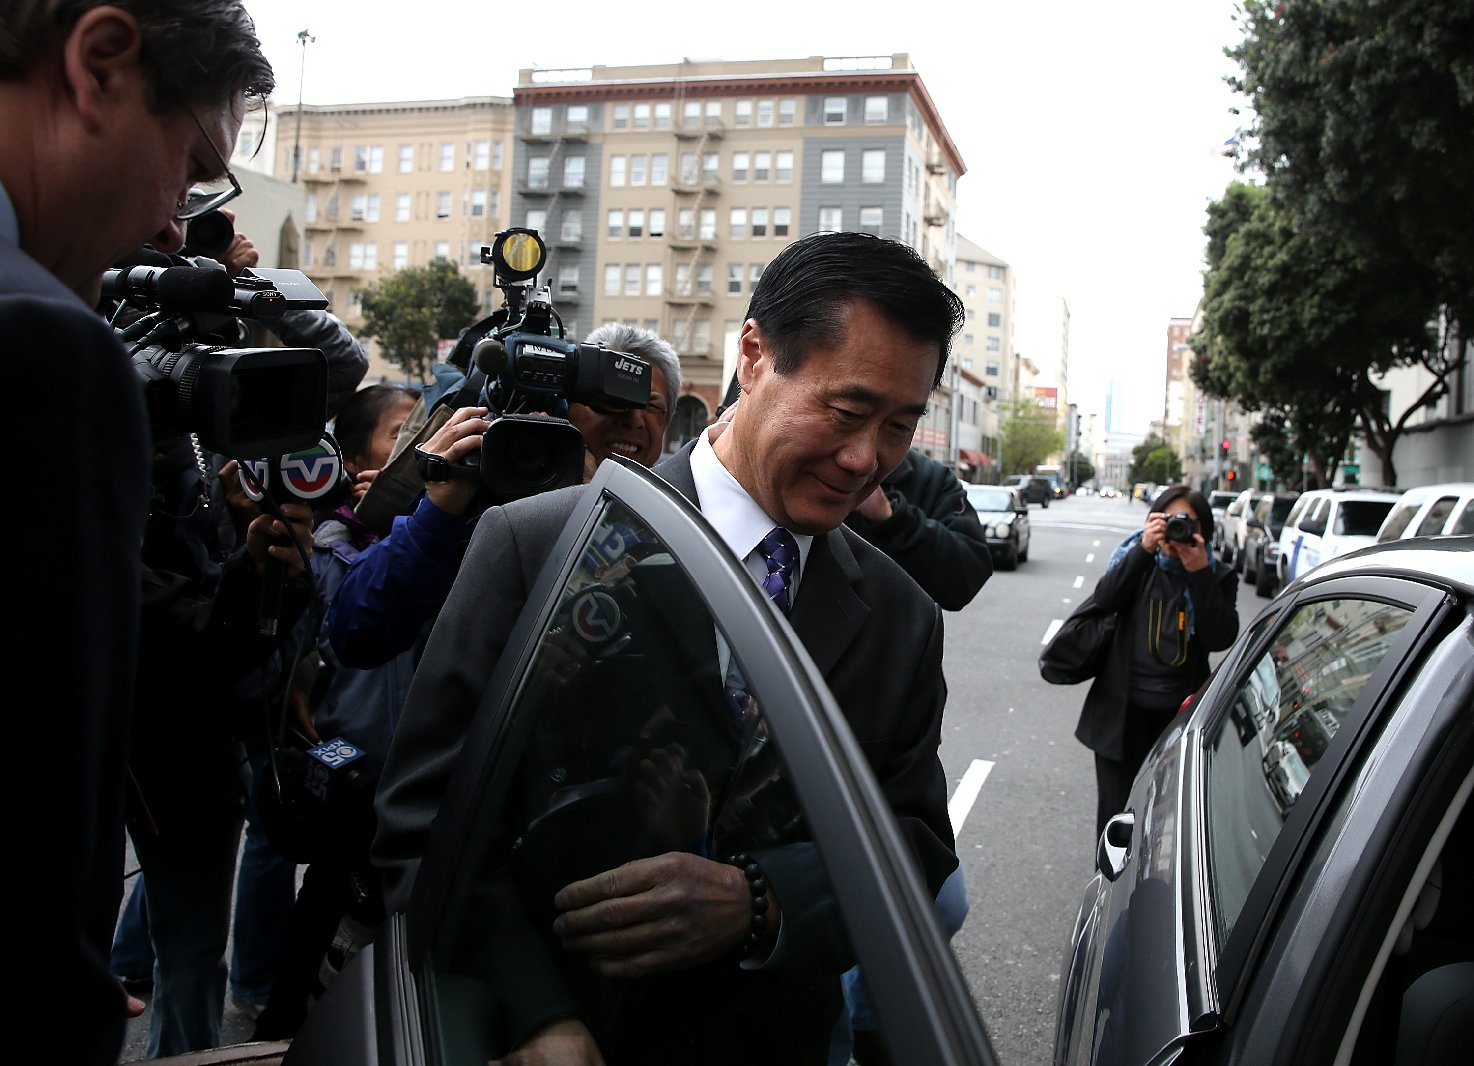 State Sen. Leland Yee gets into an awaiting car as he leaves the Phillip Burton Federal Building after a court appearance on March 31, 2014 (Justin Sullivan/Getty Images).